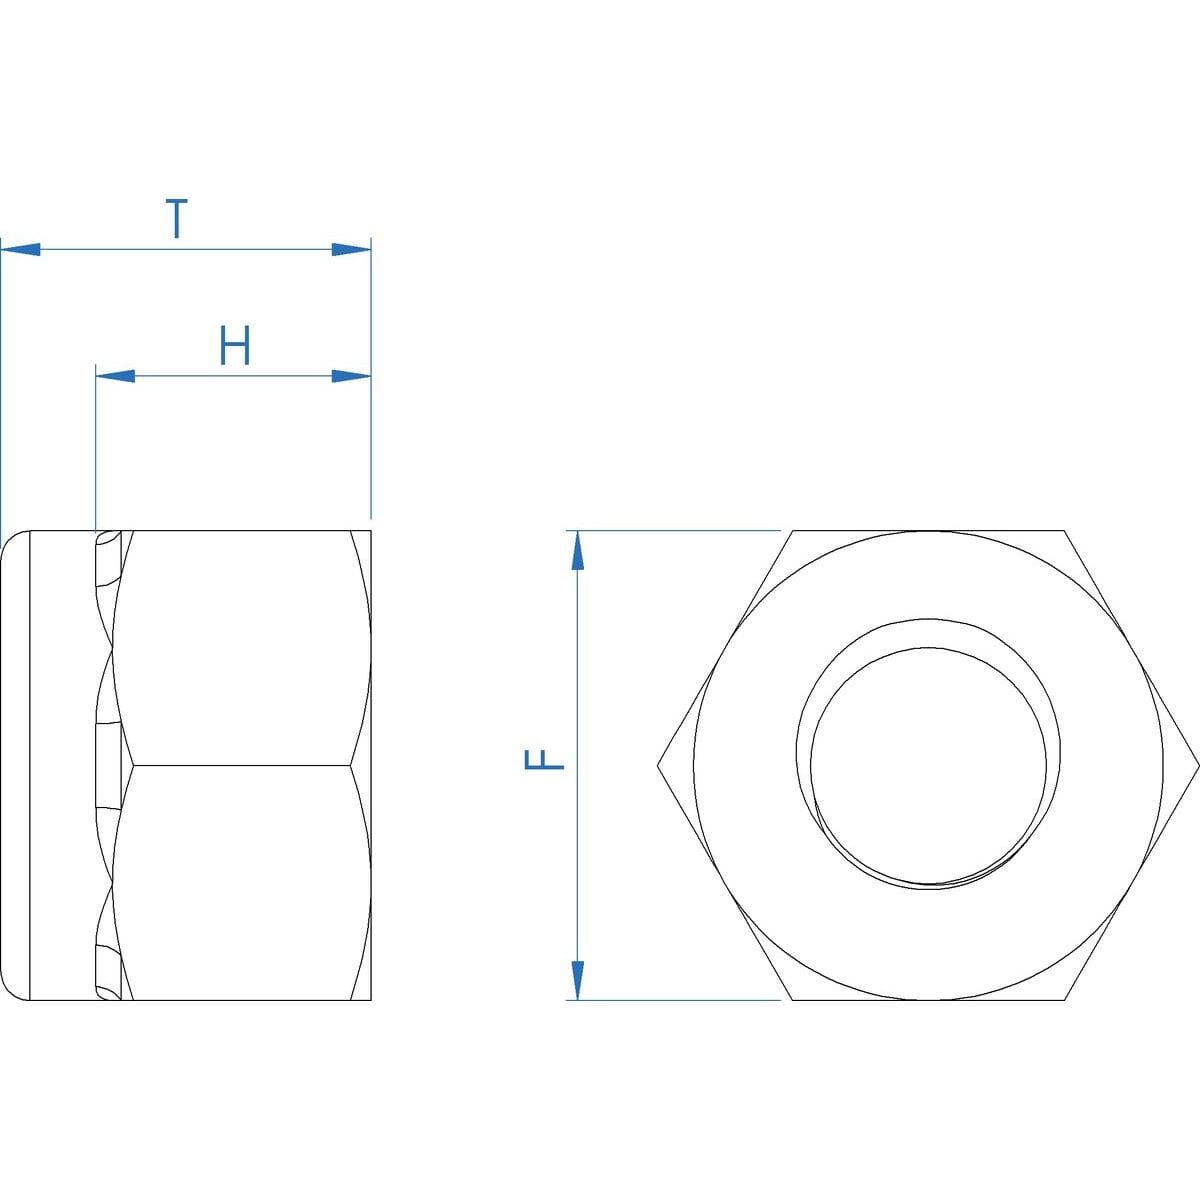 M5 High Nylon Locking Nuts (DIN 982) - Marine Stainless Steel (A4) Drawing